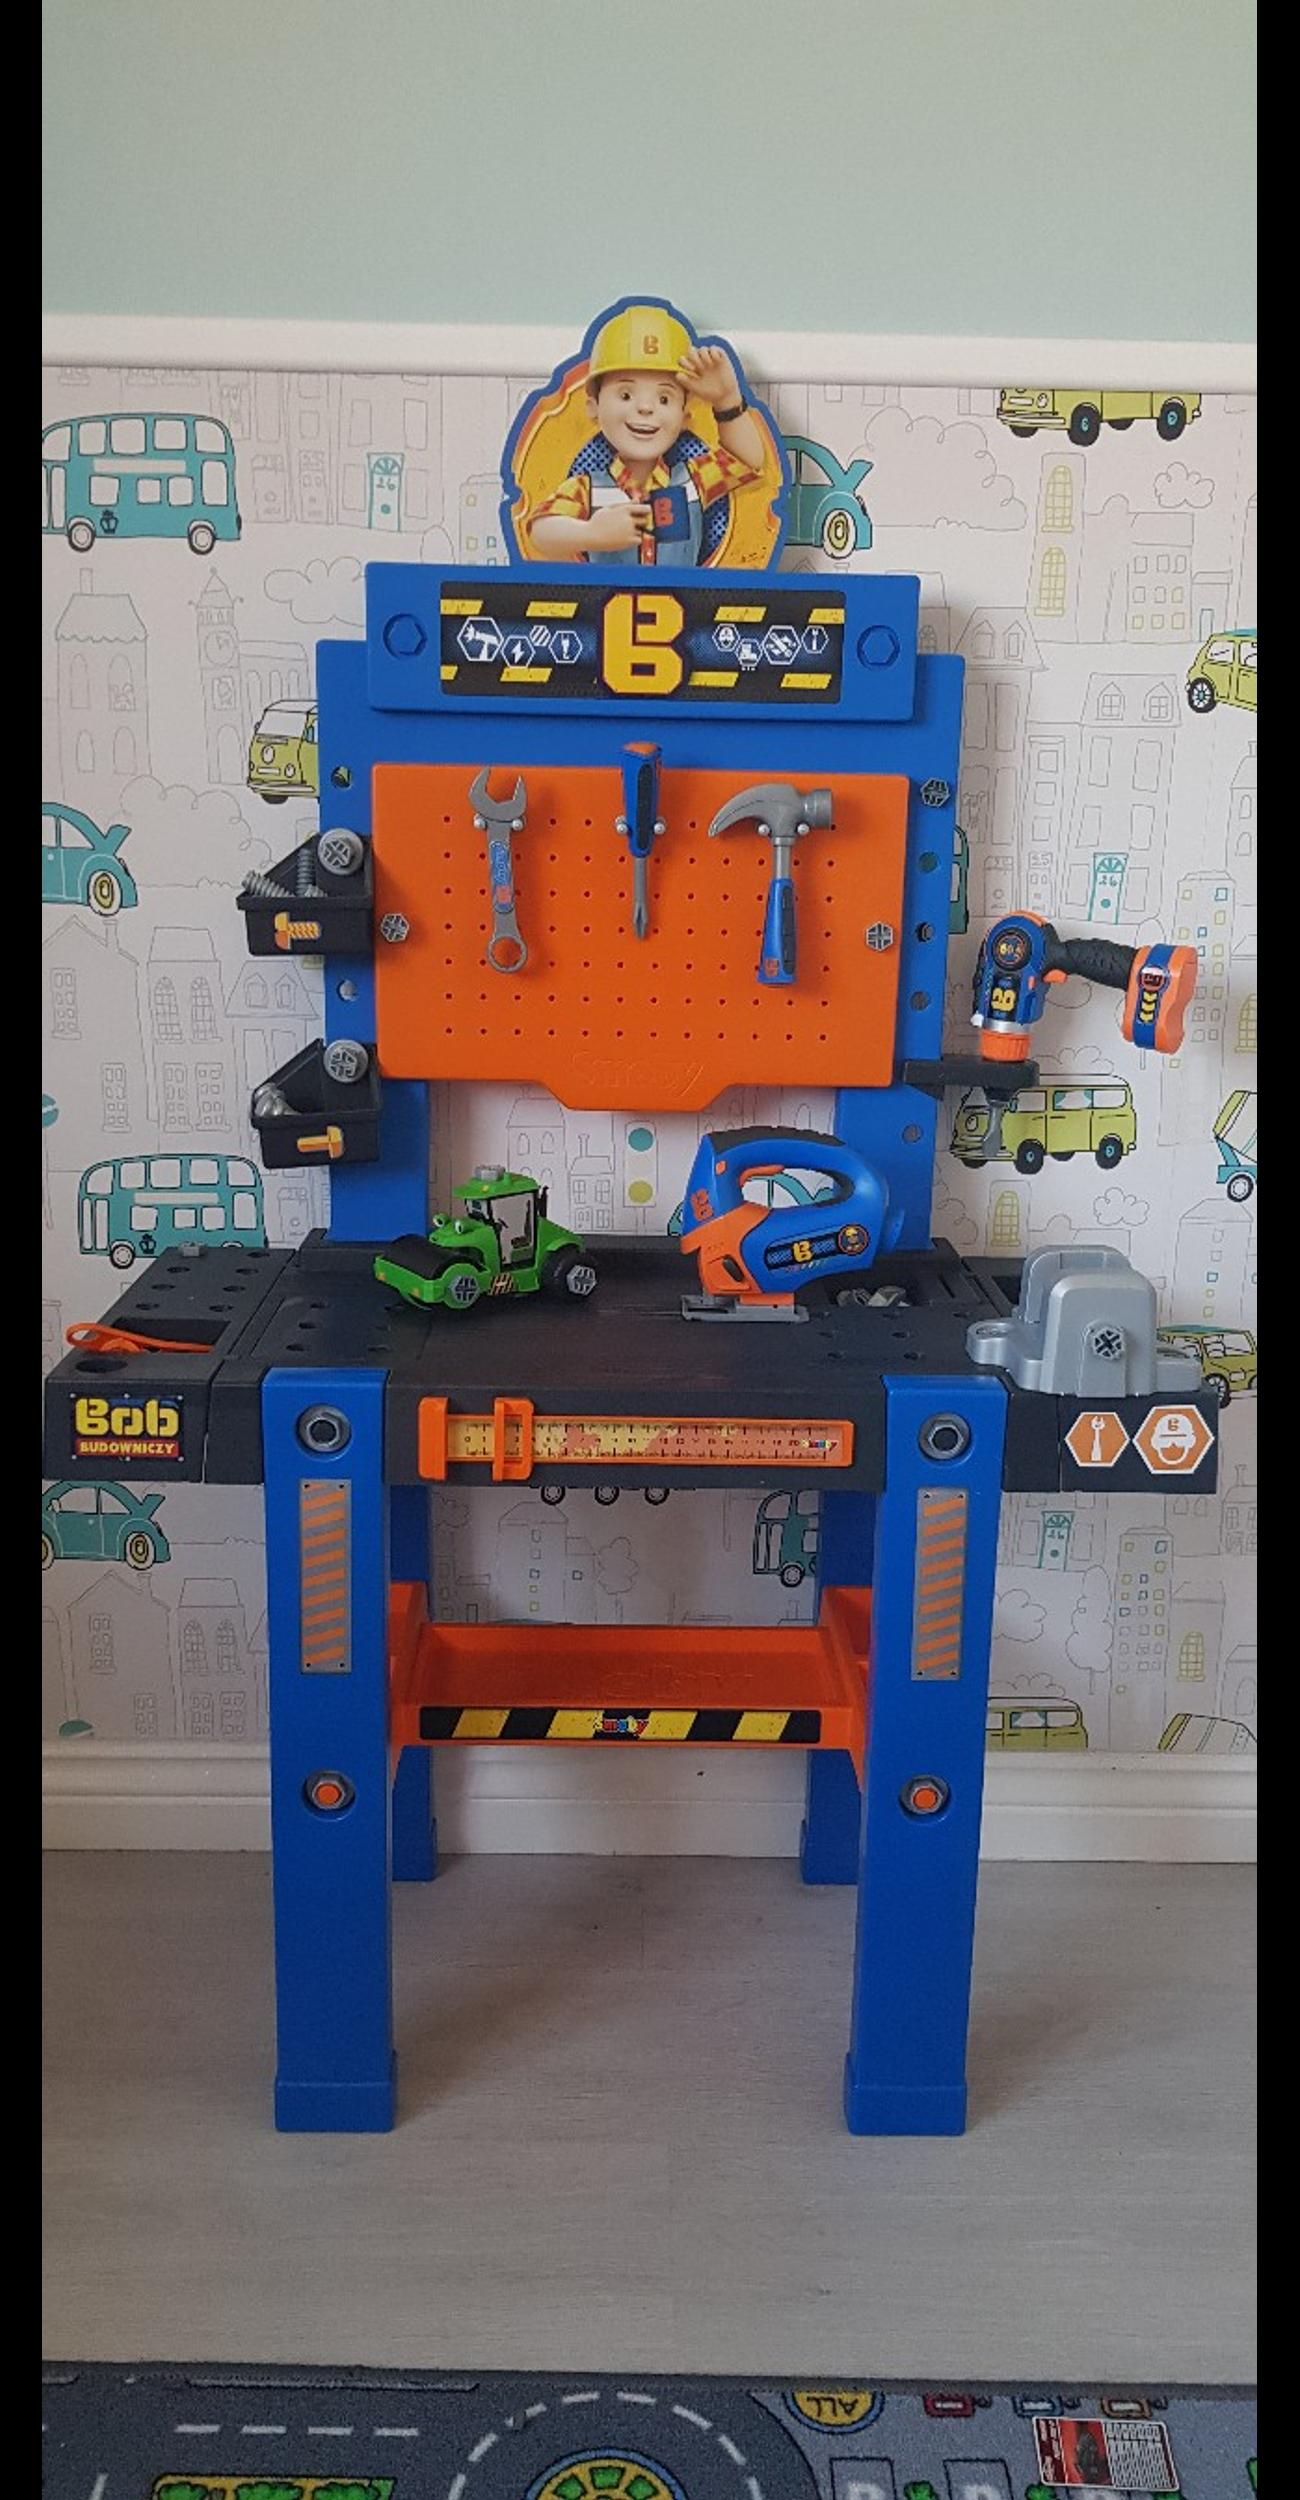 Enjoyable Bob The Builder Work Bench In M9 Manchester For 25 00 For Gmtry Best Dining Table And Chair Ideas Images Gmtryco